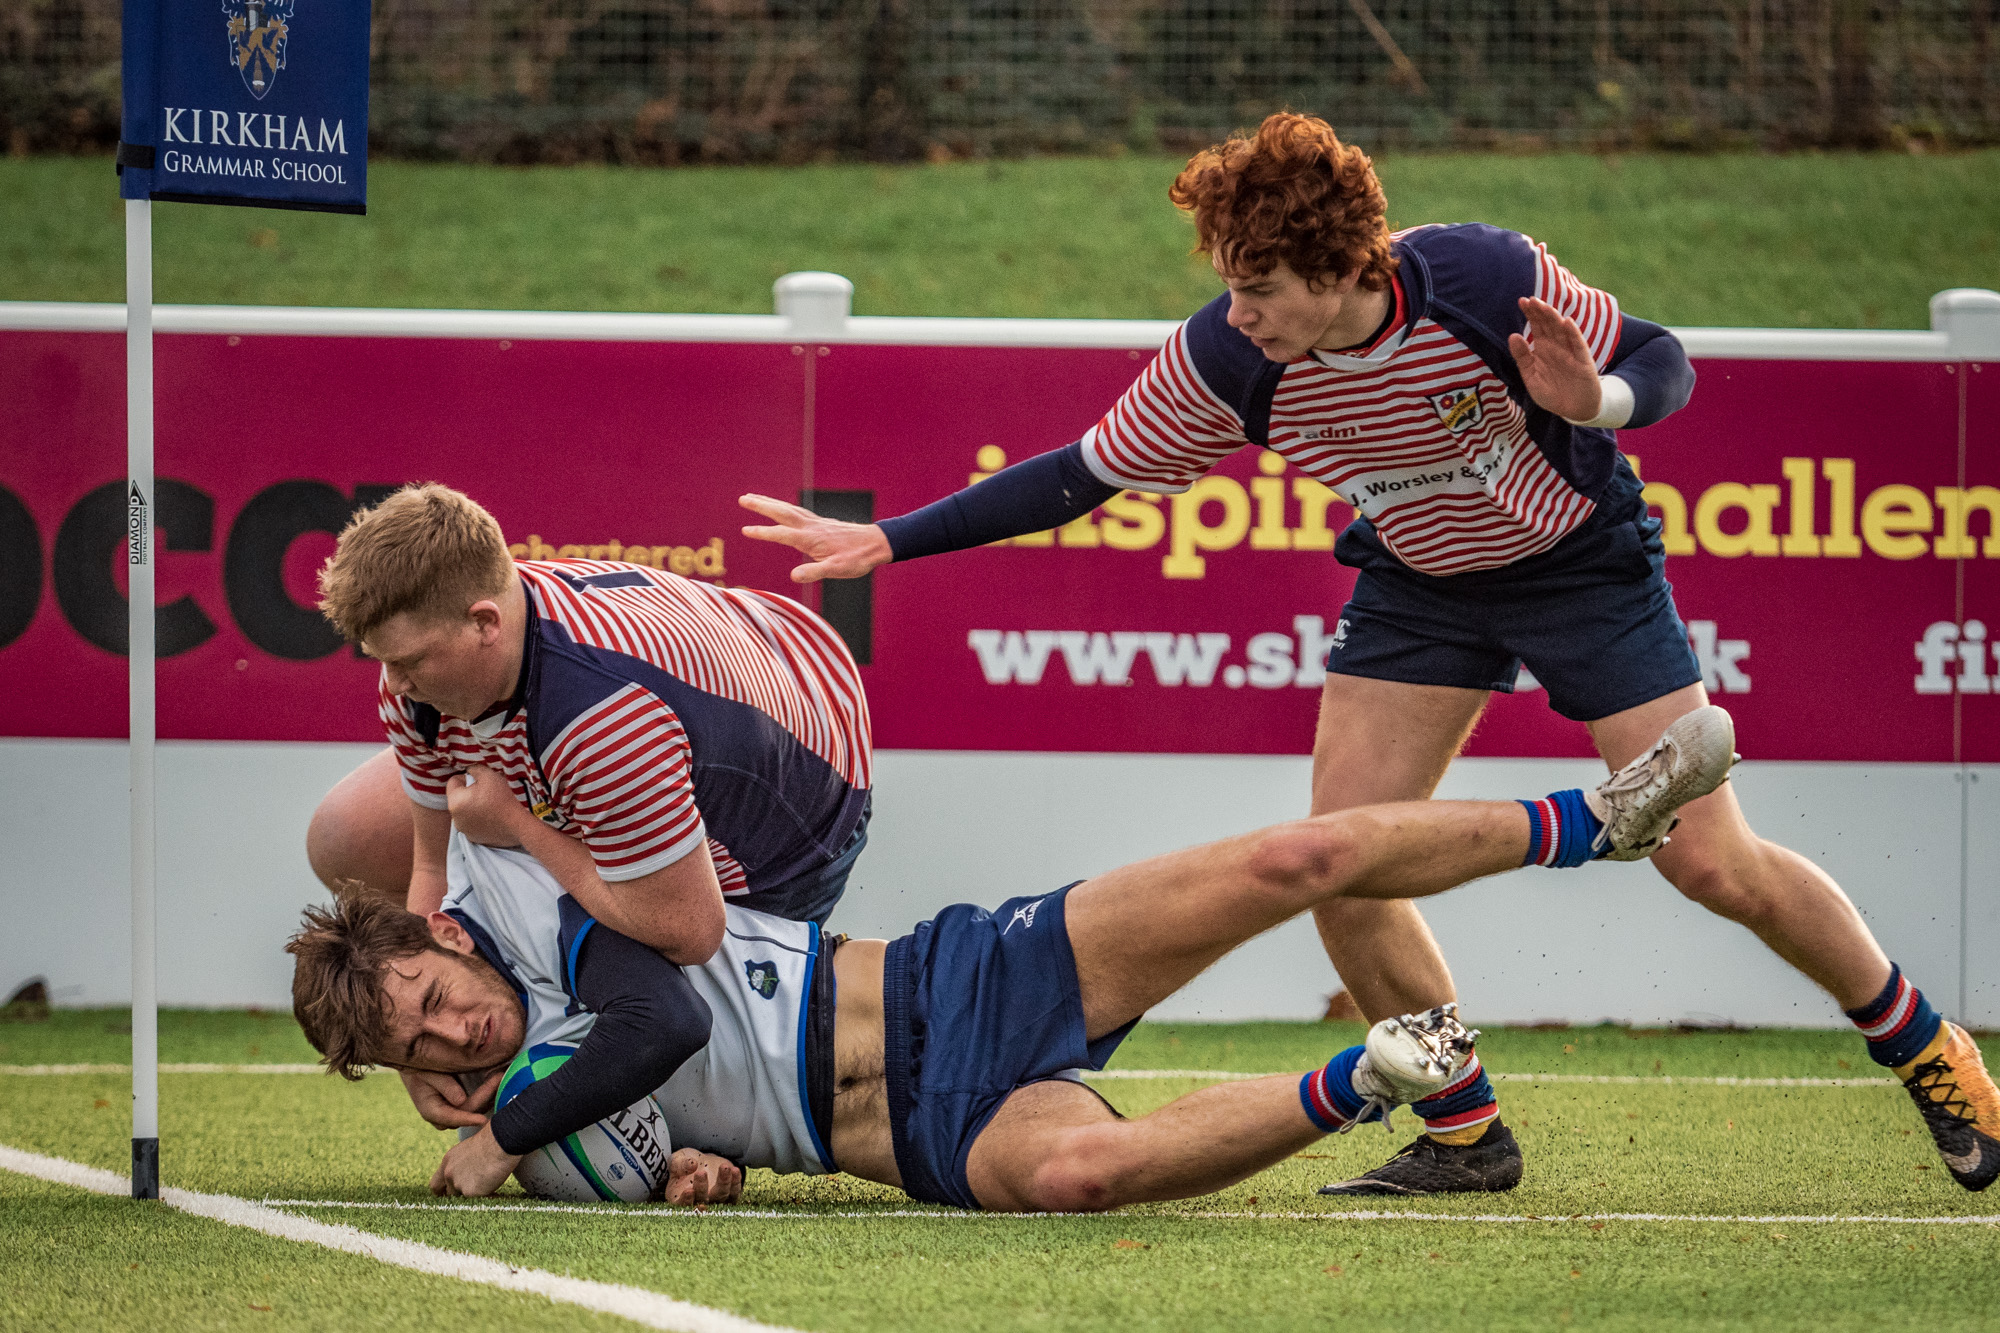 One of Yorkshire's two second half tries